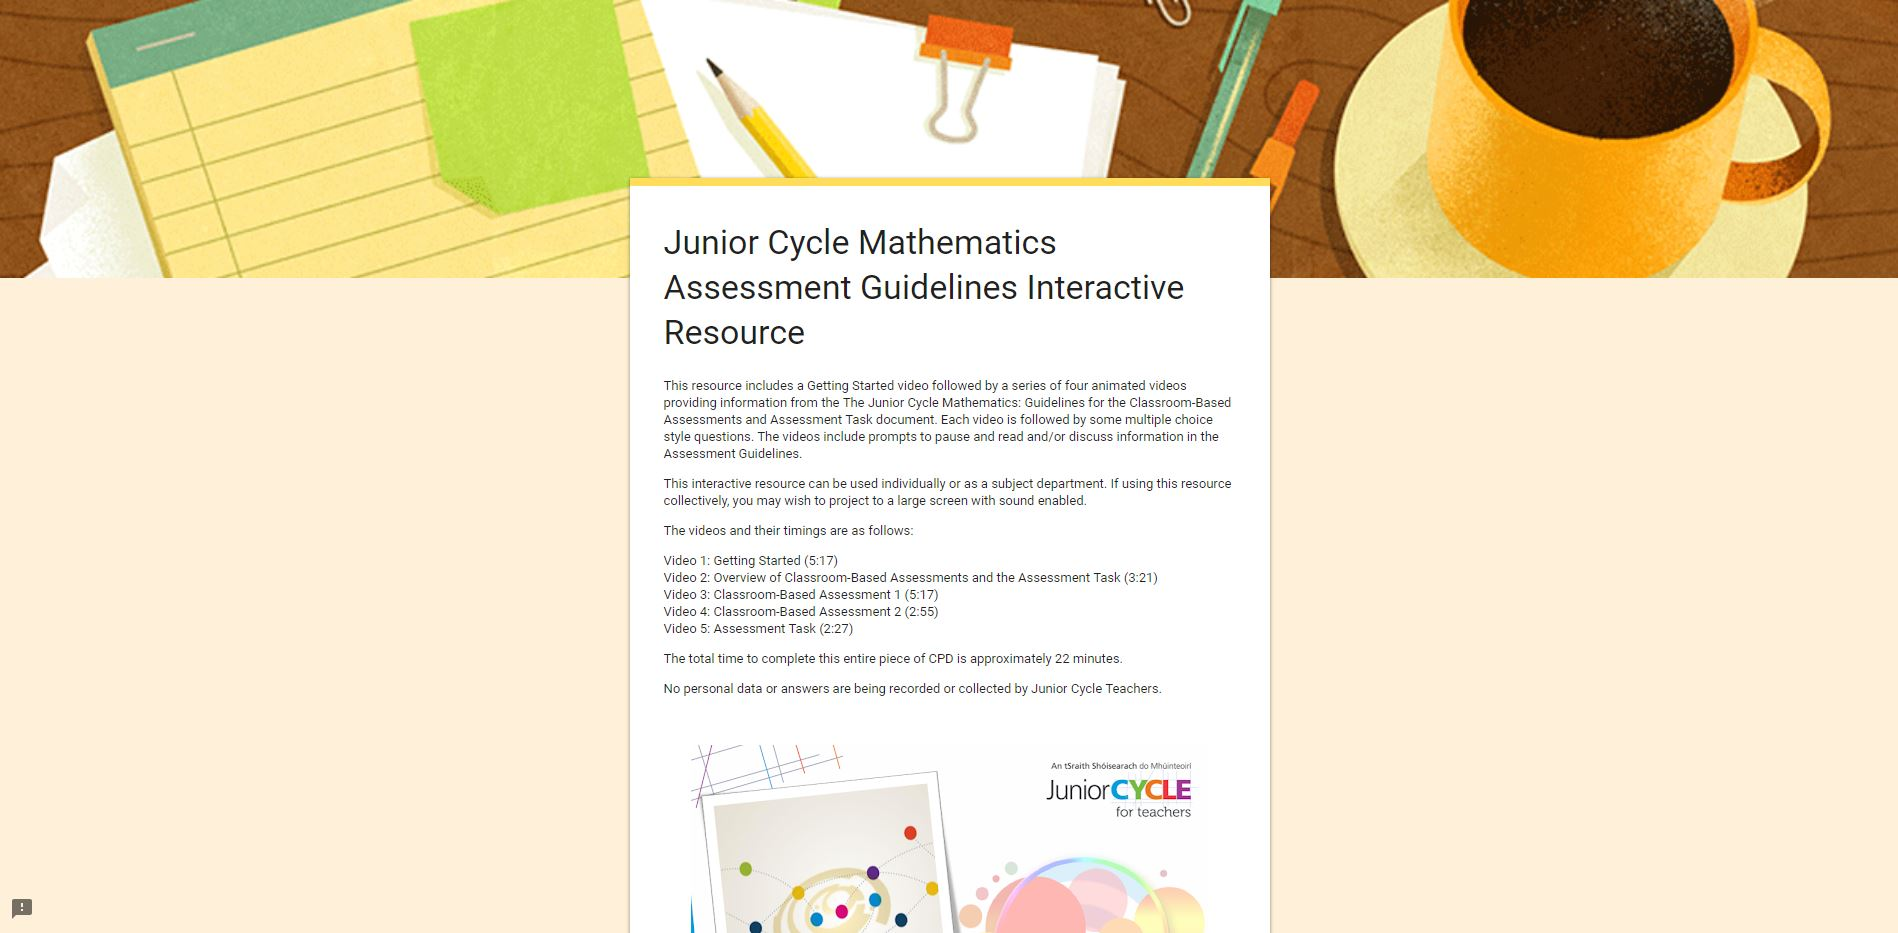 Assessment Guidelines Interactive Resource